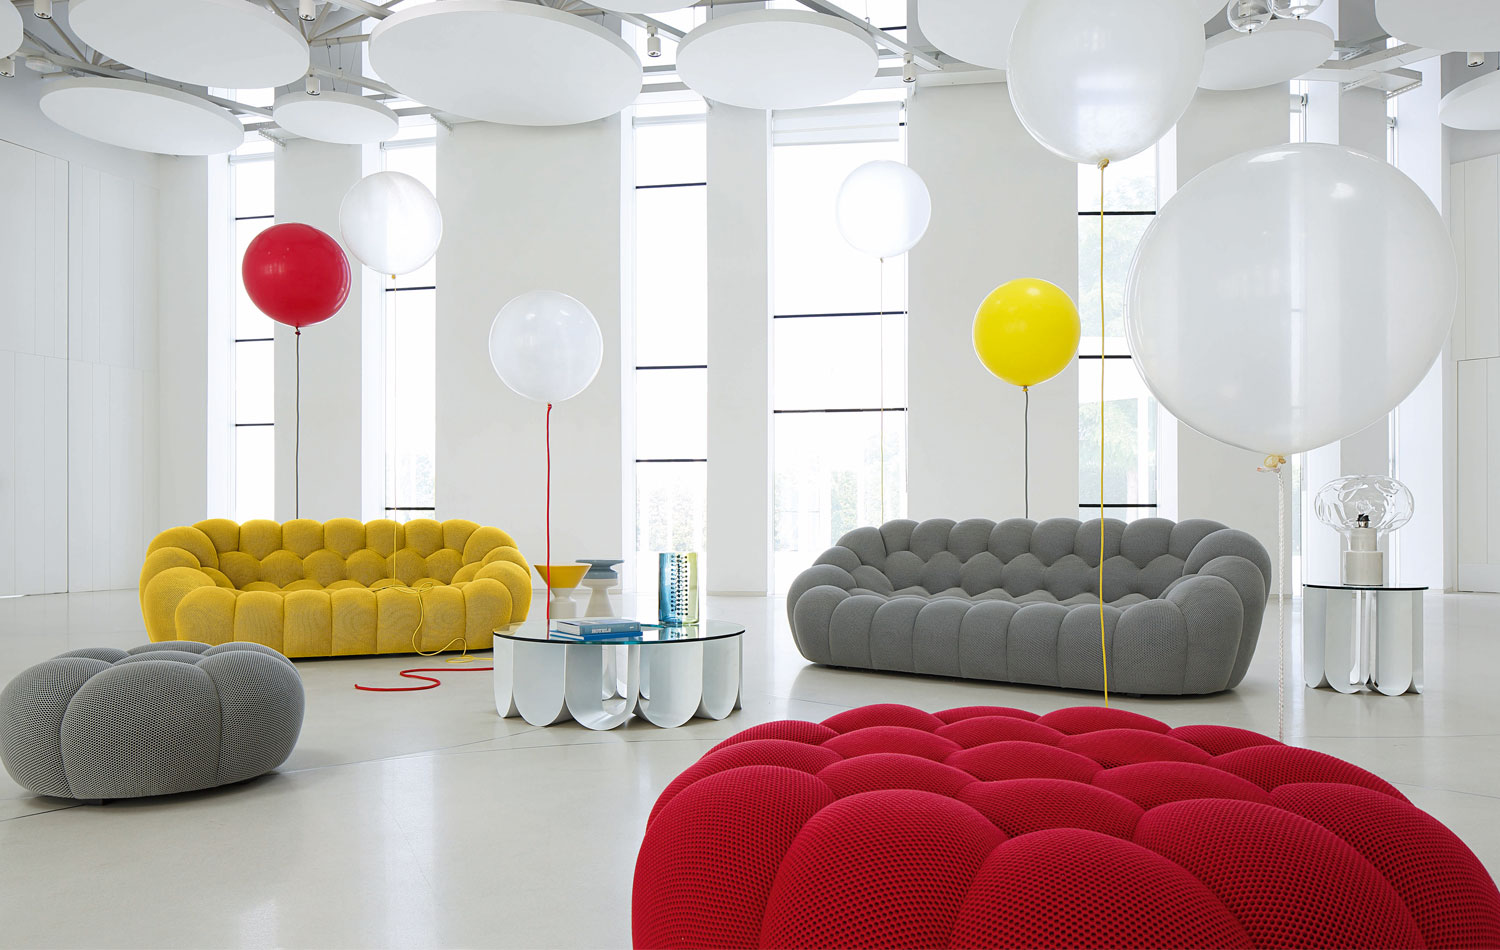 comfy the bubble sofa designed by sasha lakic for roche bobois livin spaces